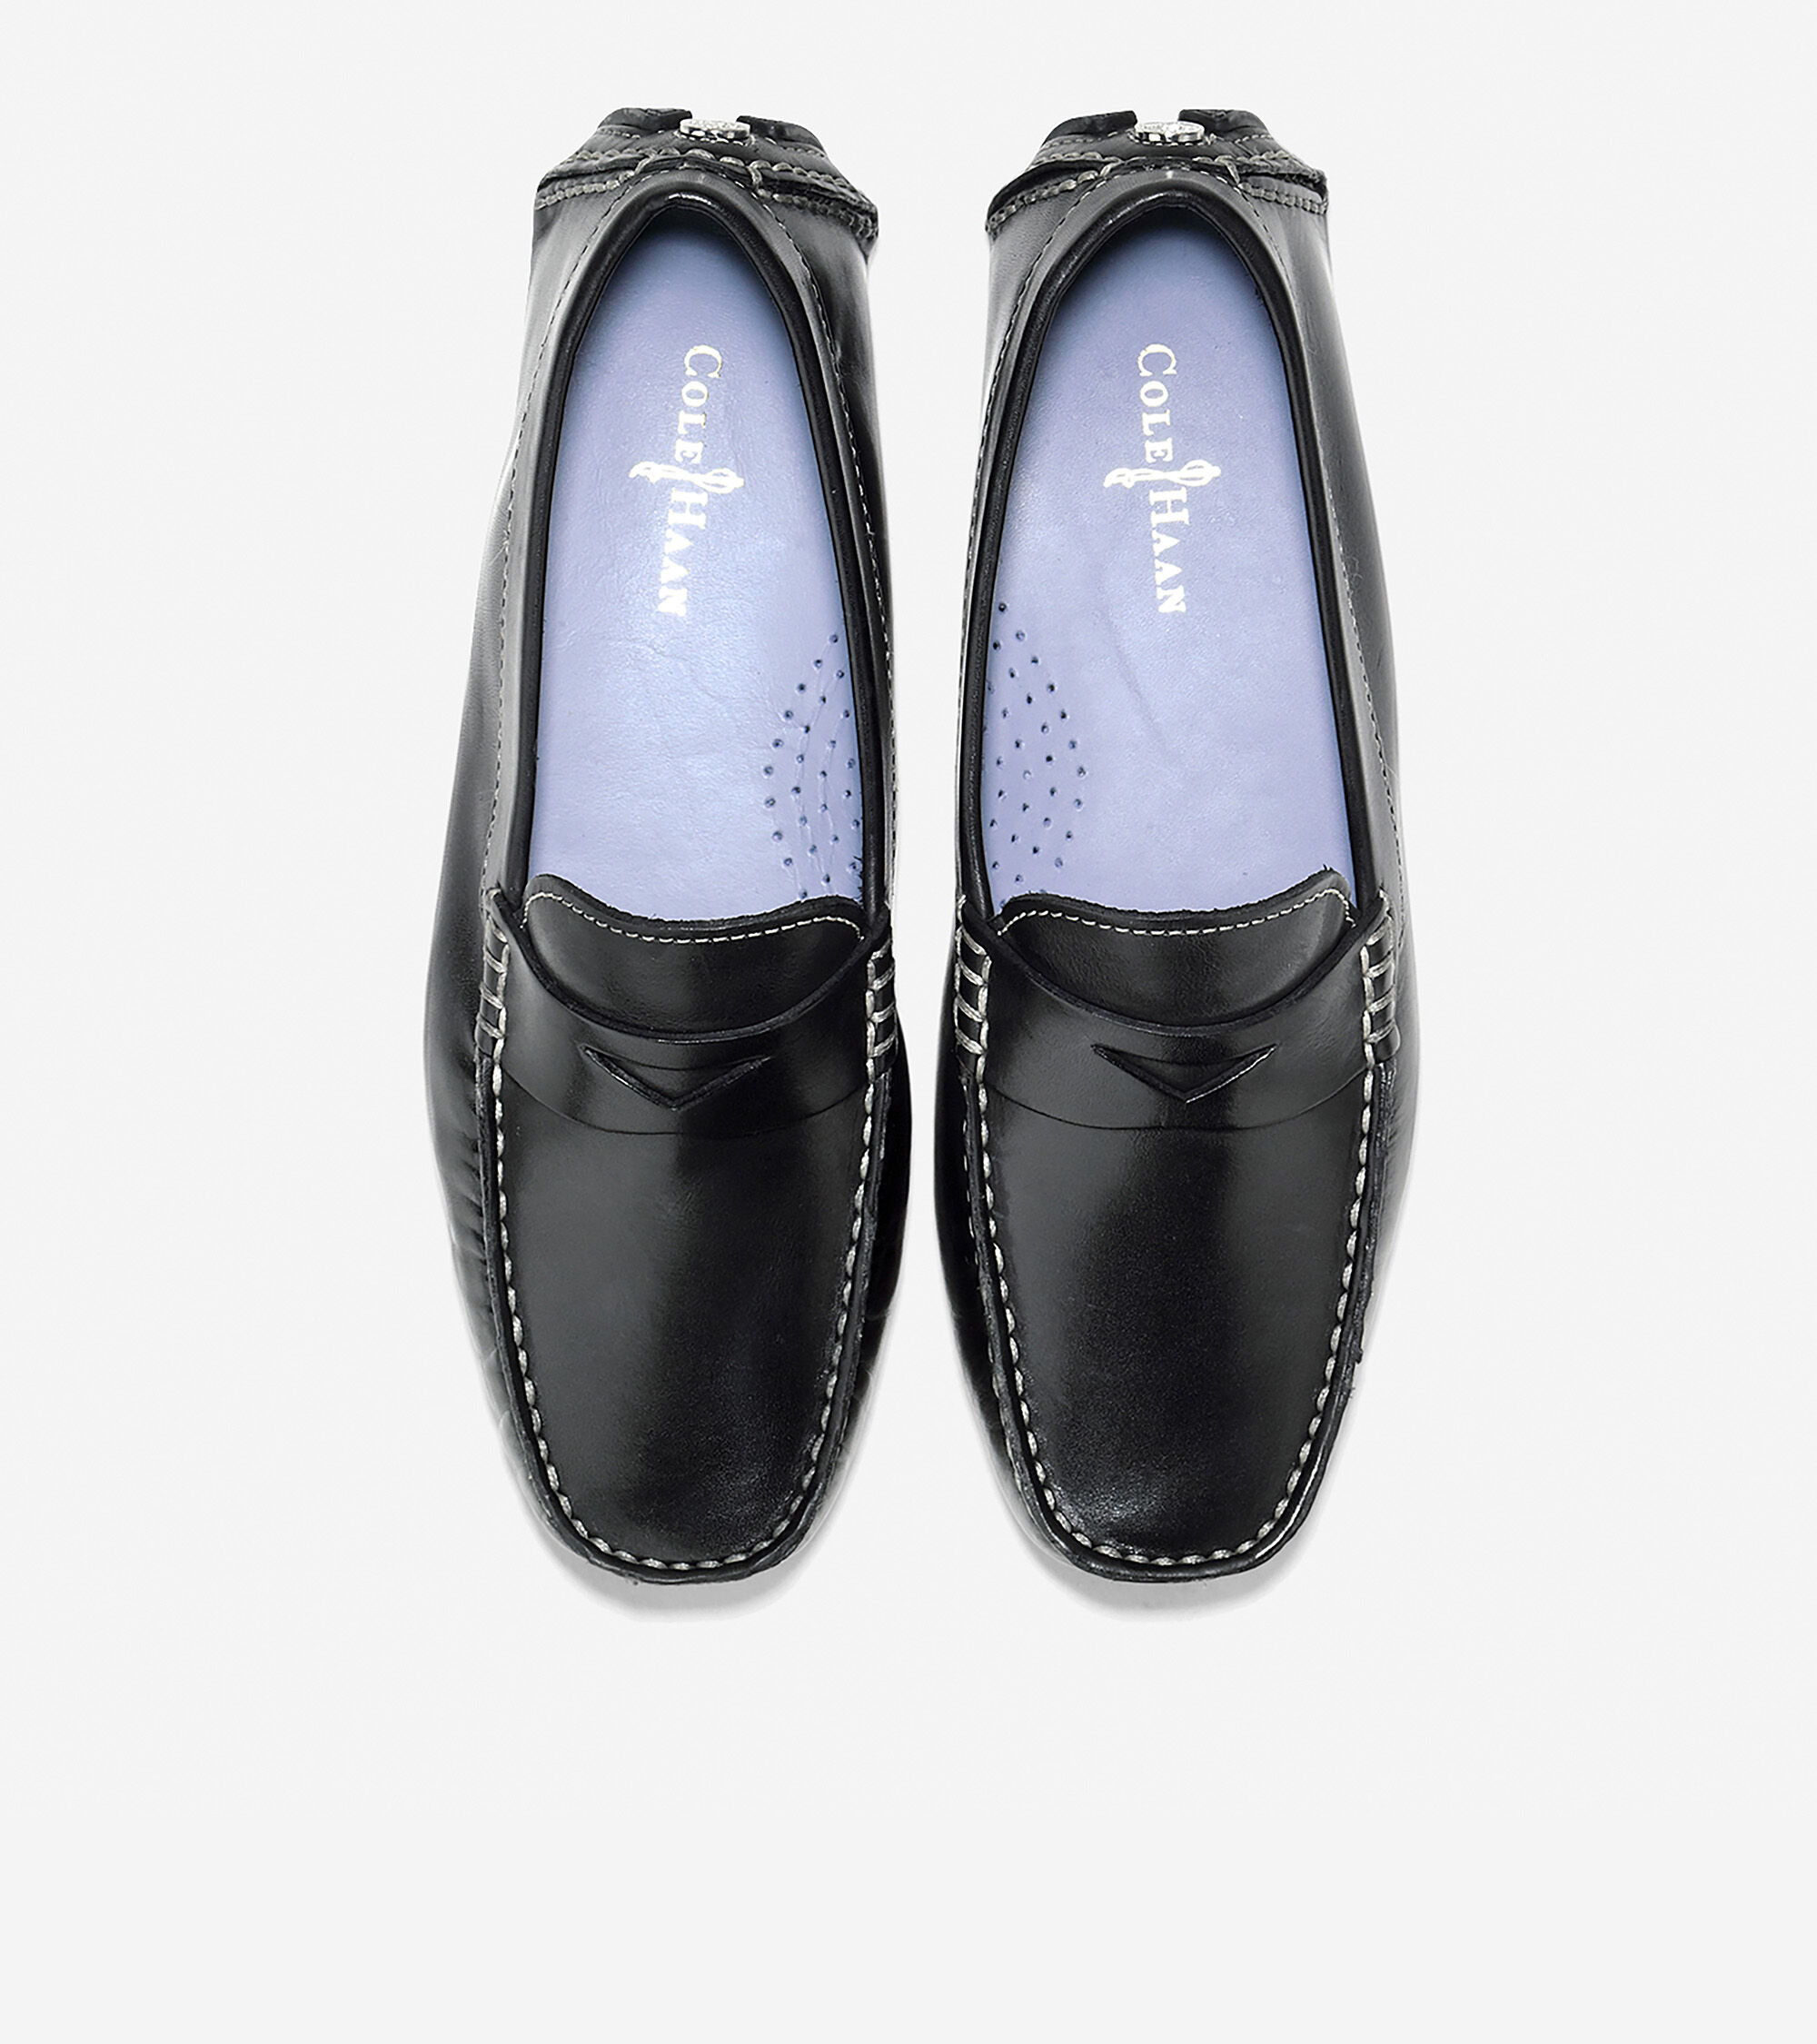 Womens Trillby Drivers In Black Cole Haan D Island Shoes Slip On New Driving Comfort Leather Driver